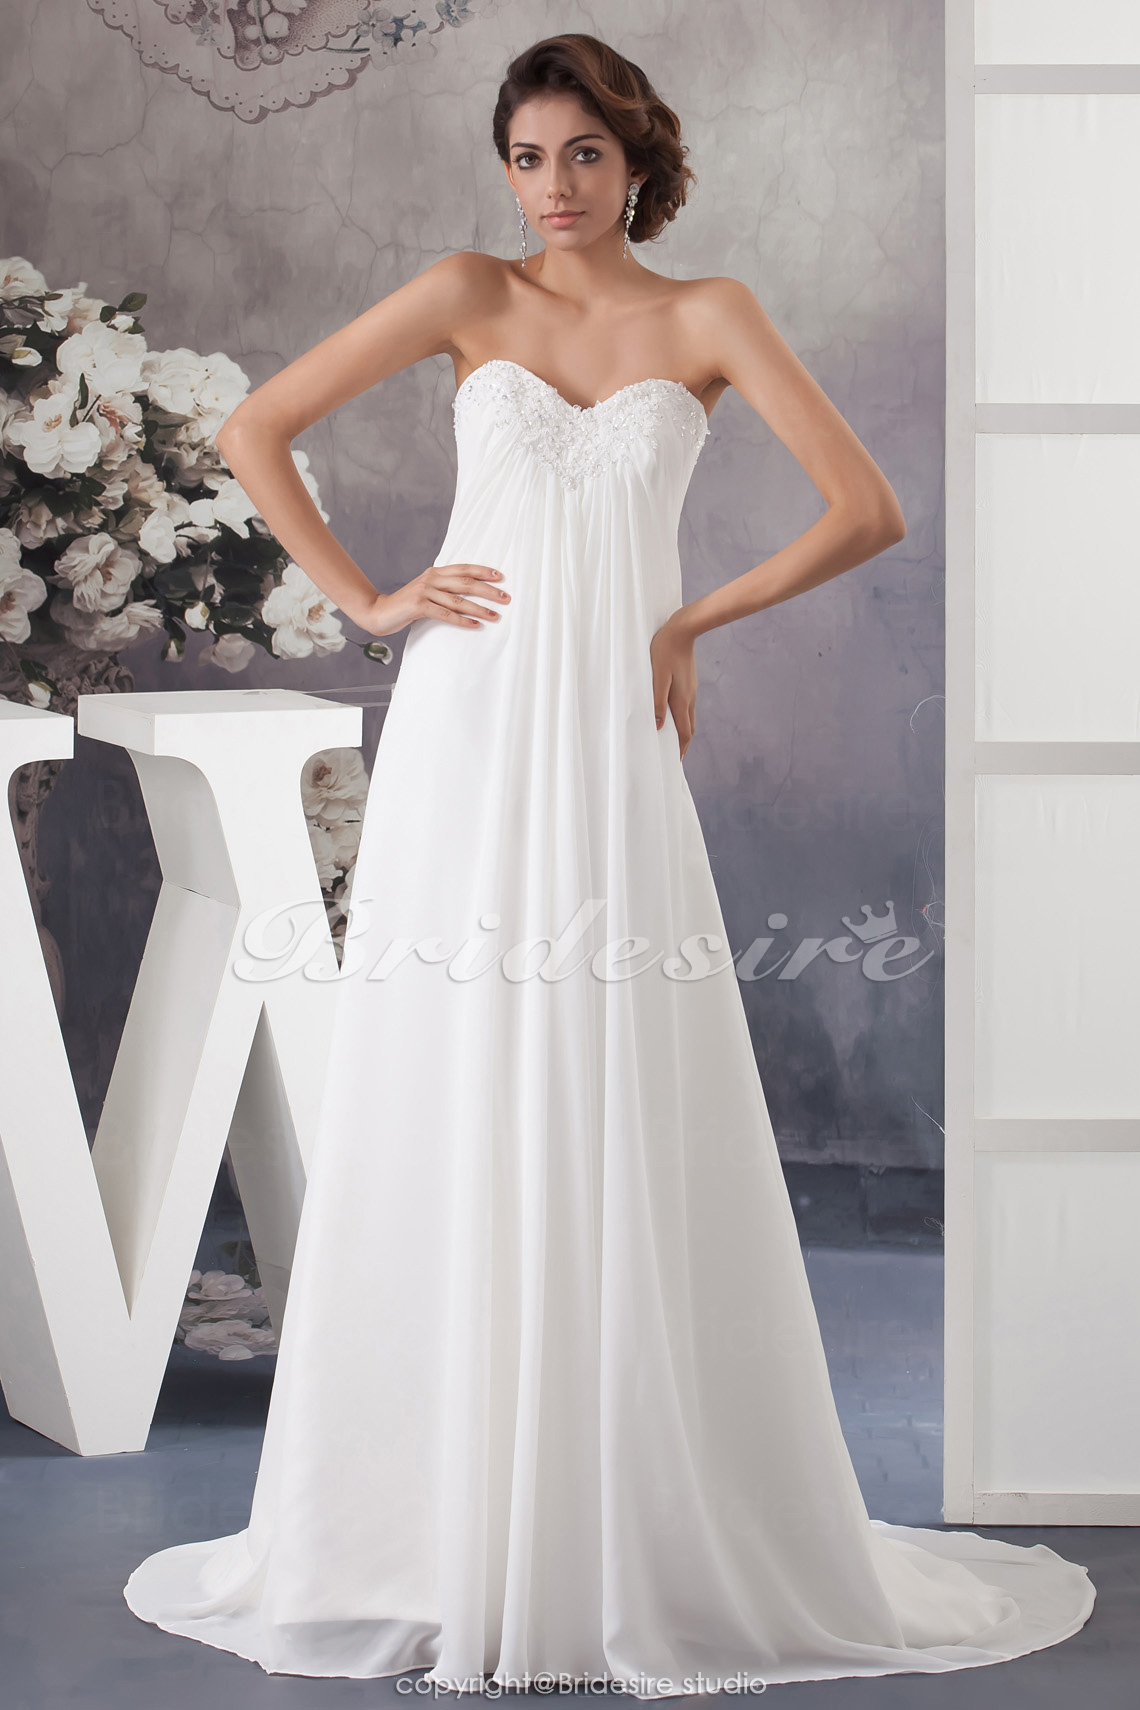 A-line Sweetheart Sweep Train Sleeveless Chiffon Wedding Dress